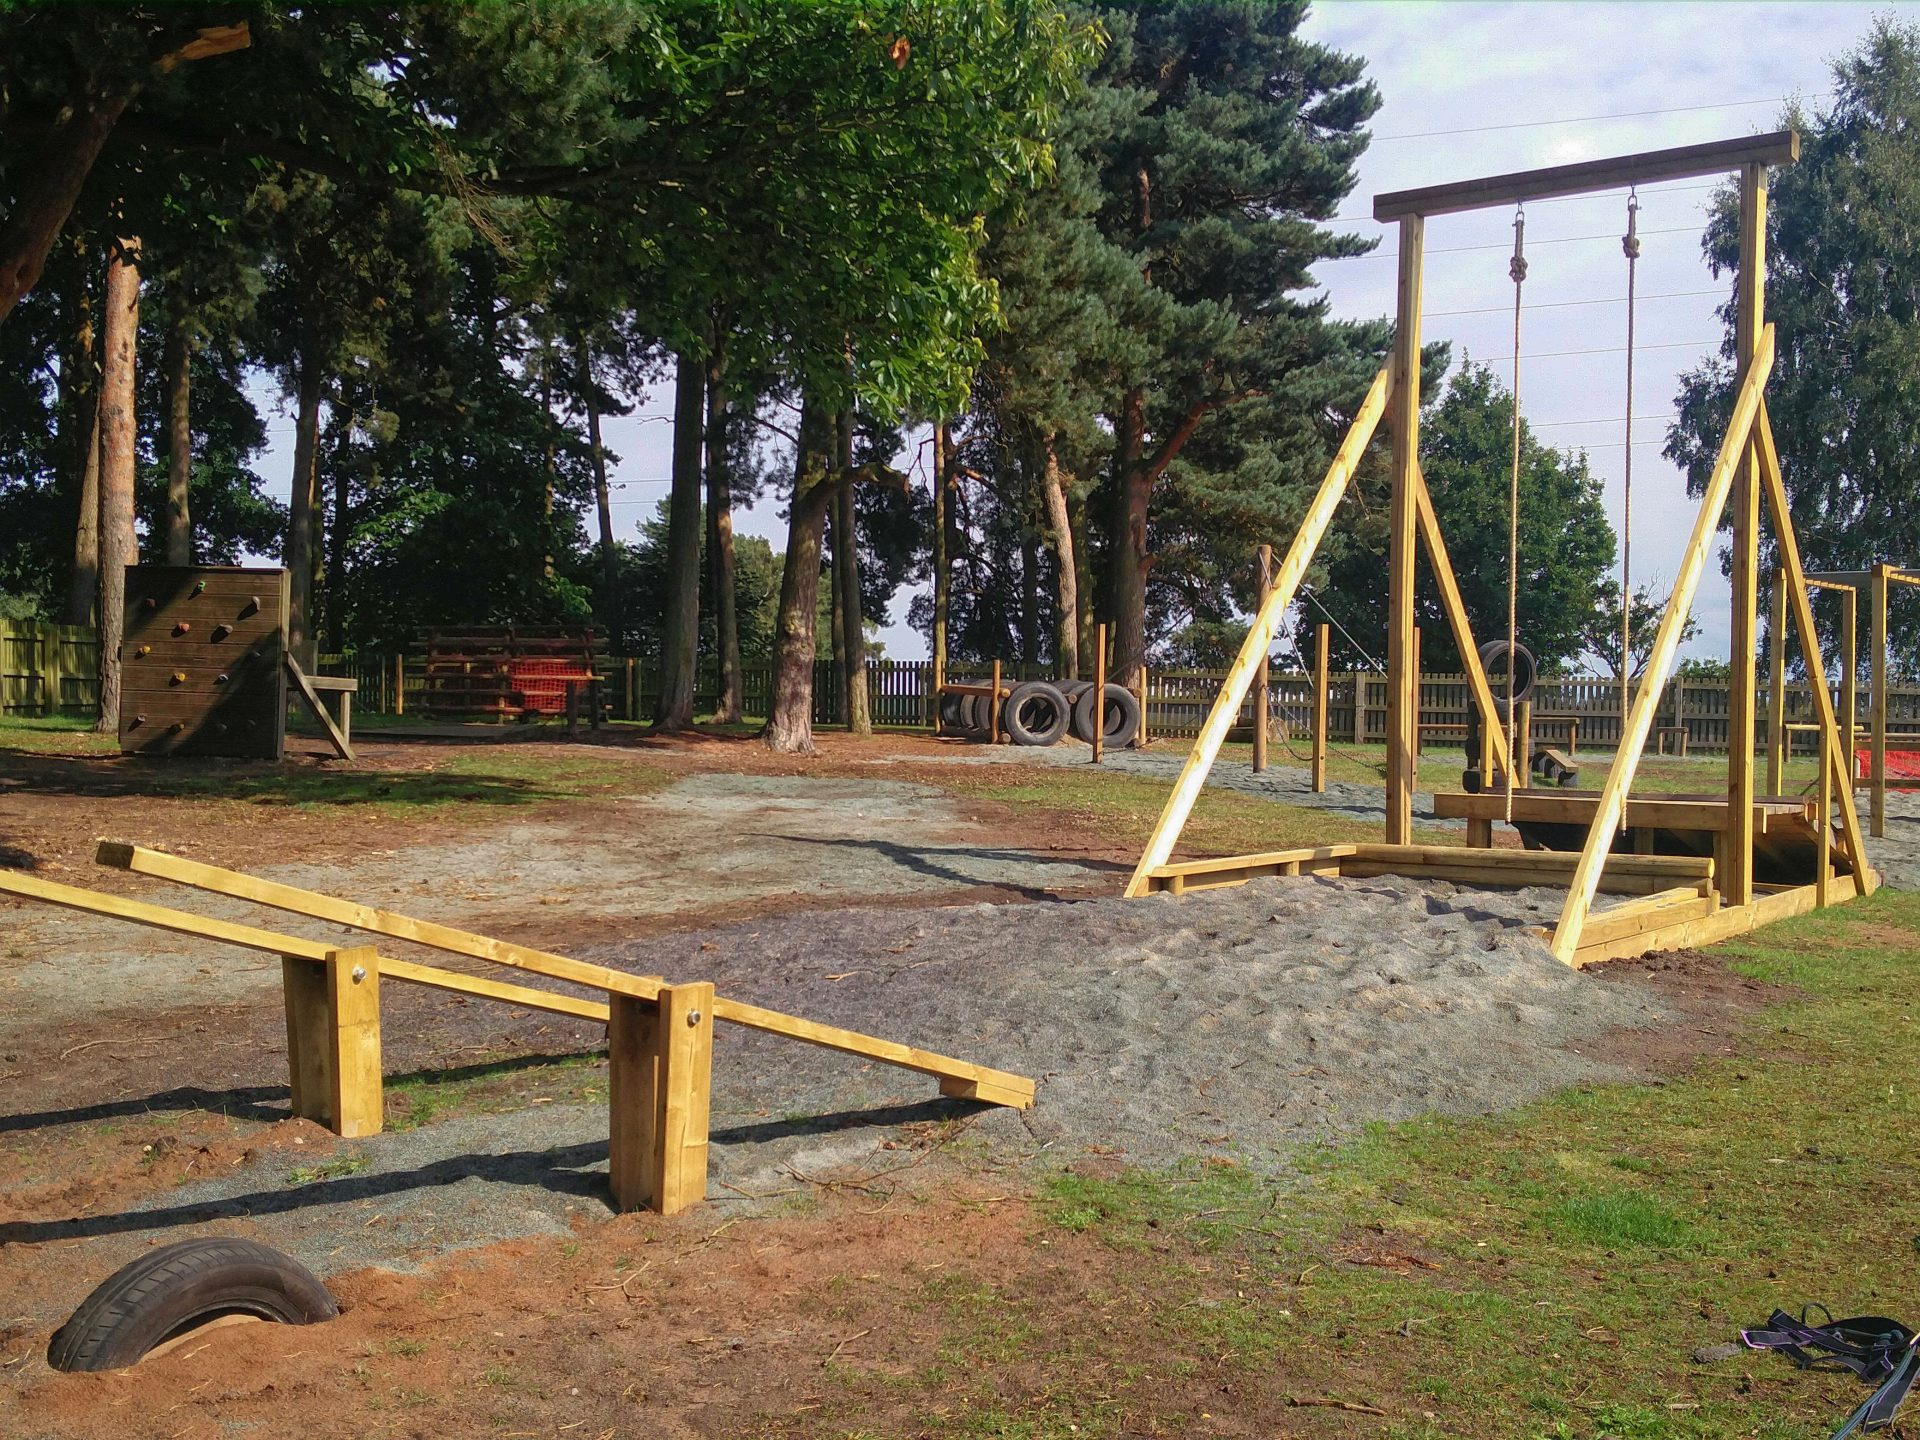 Assault course at Walesby forest